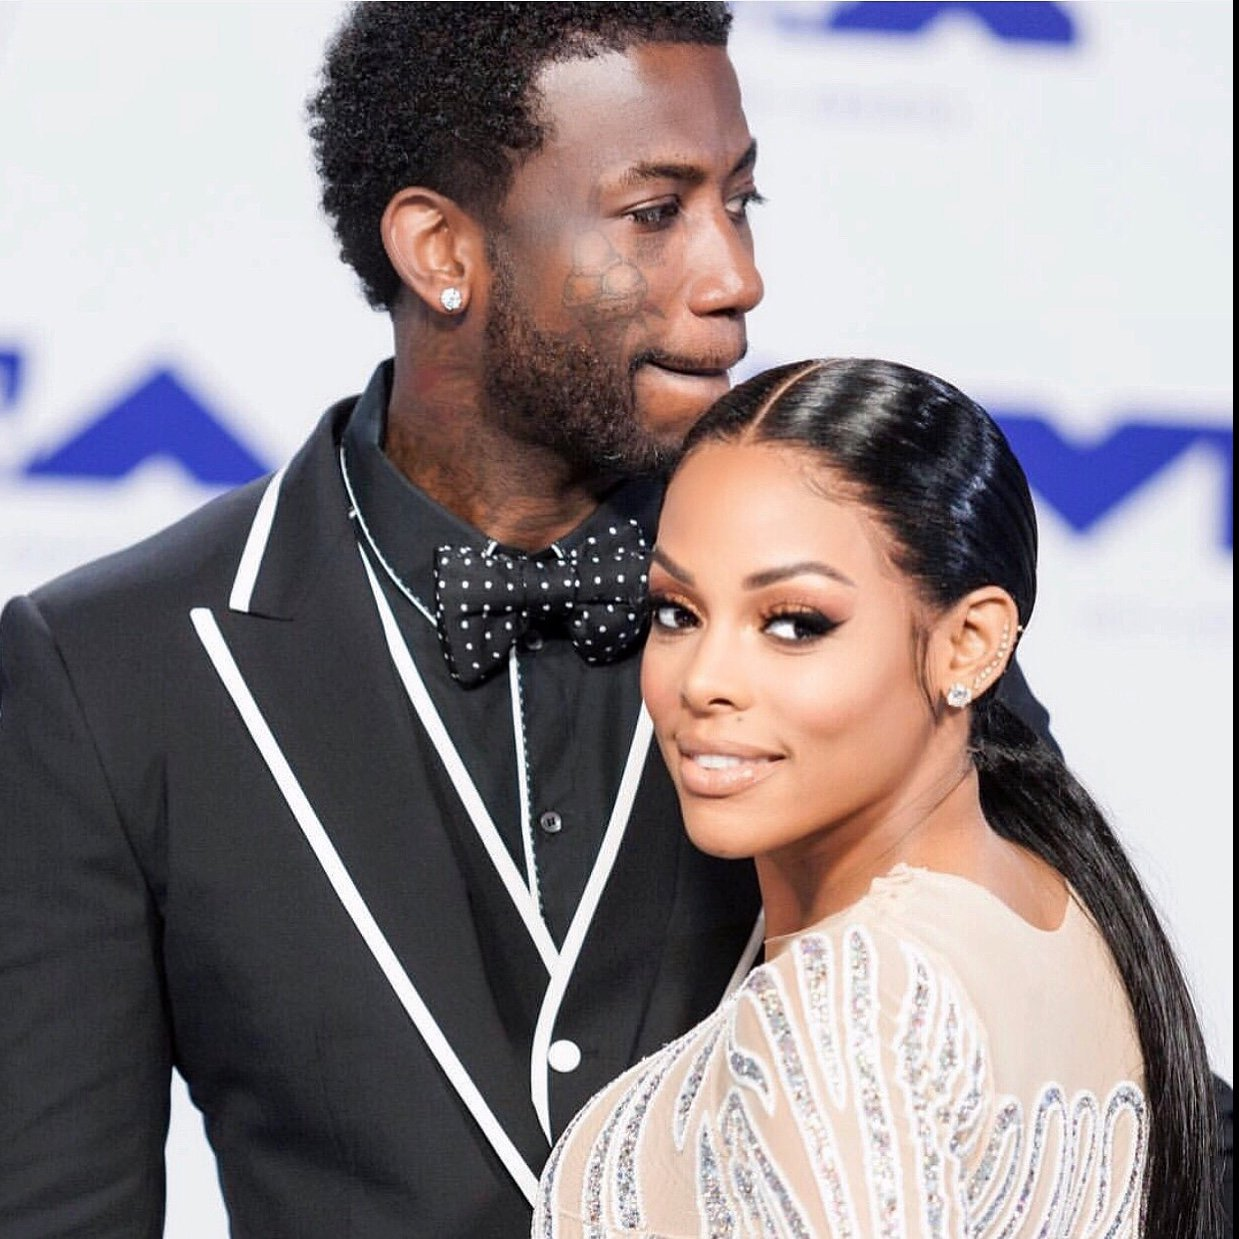 #GucciMane, #KeyshiaKaOir, Keyshia Kaoir, #news, news, music, #music, Gucci Mane,